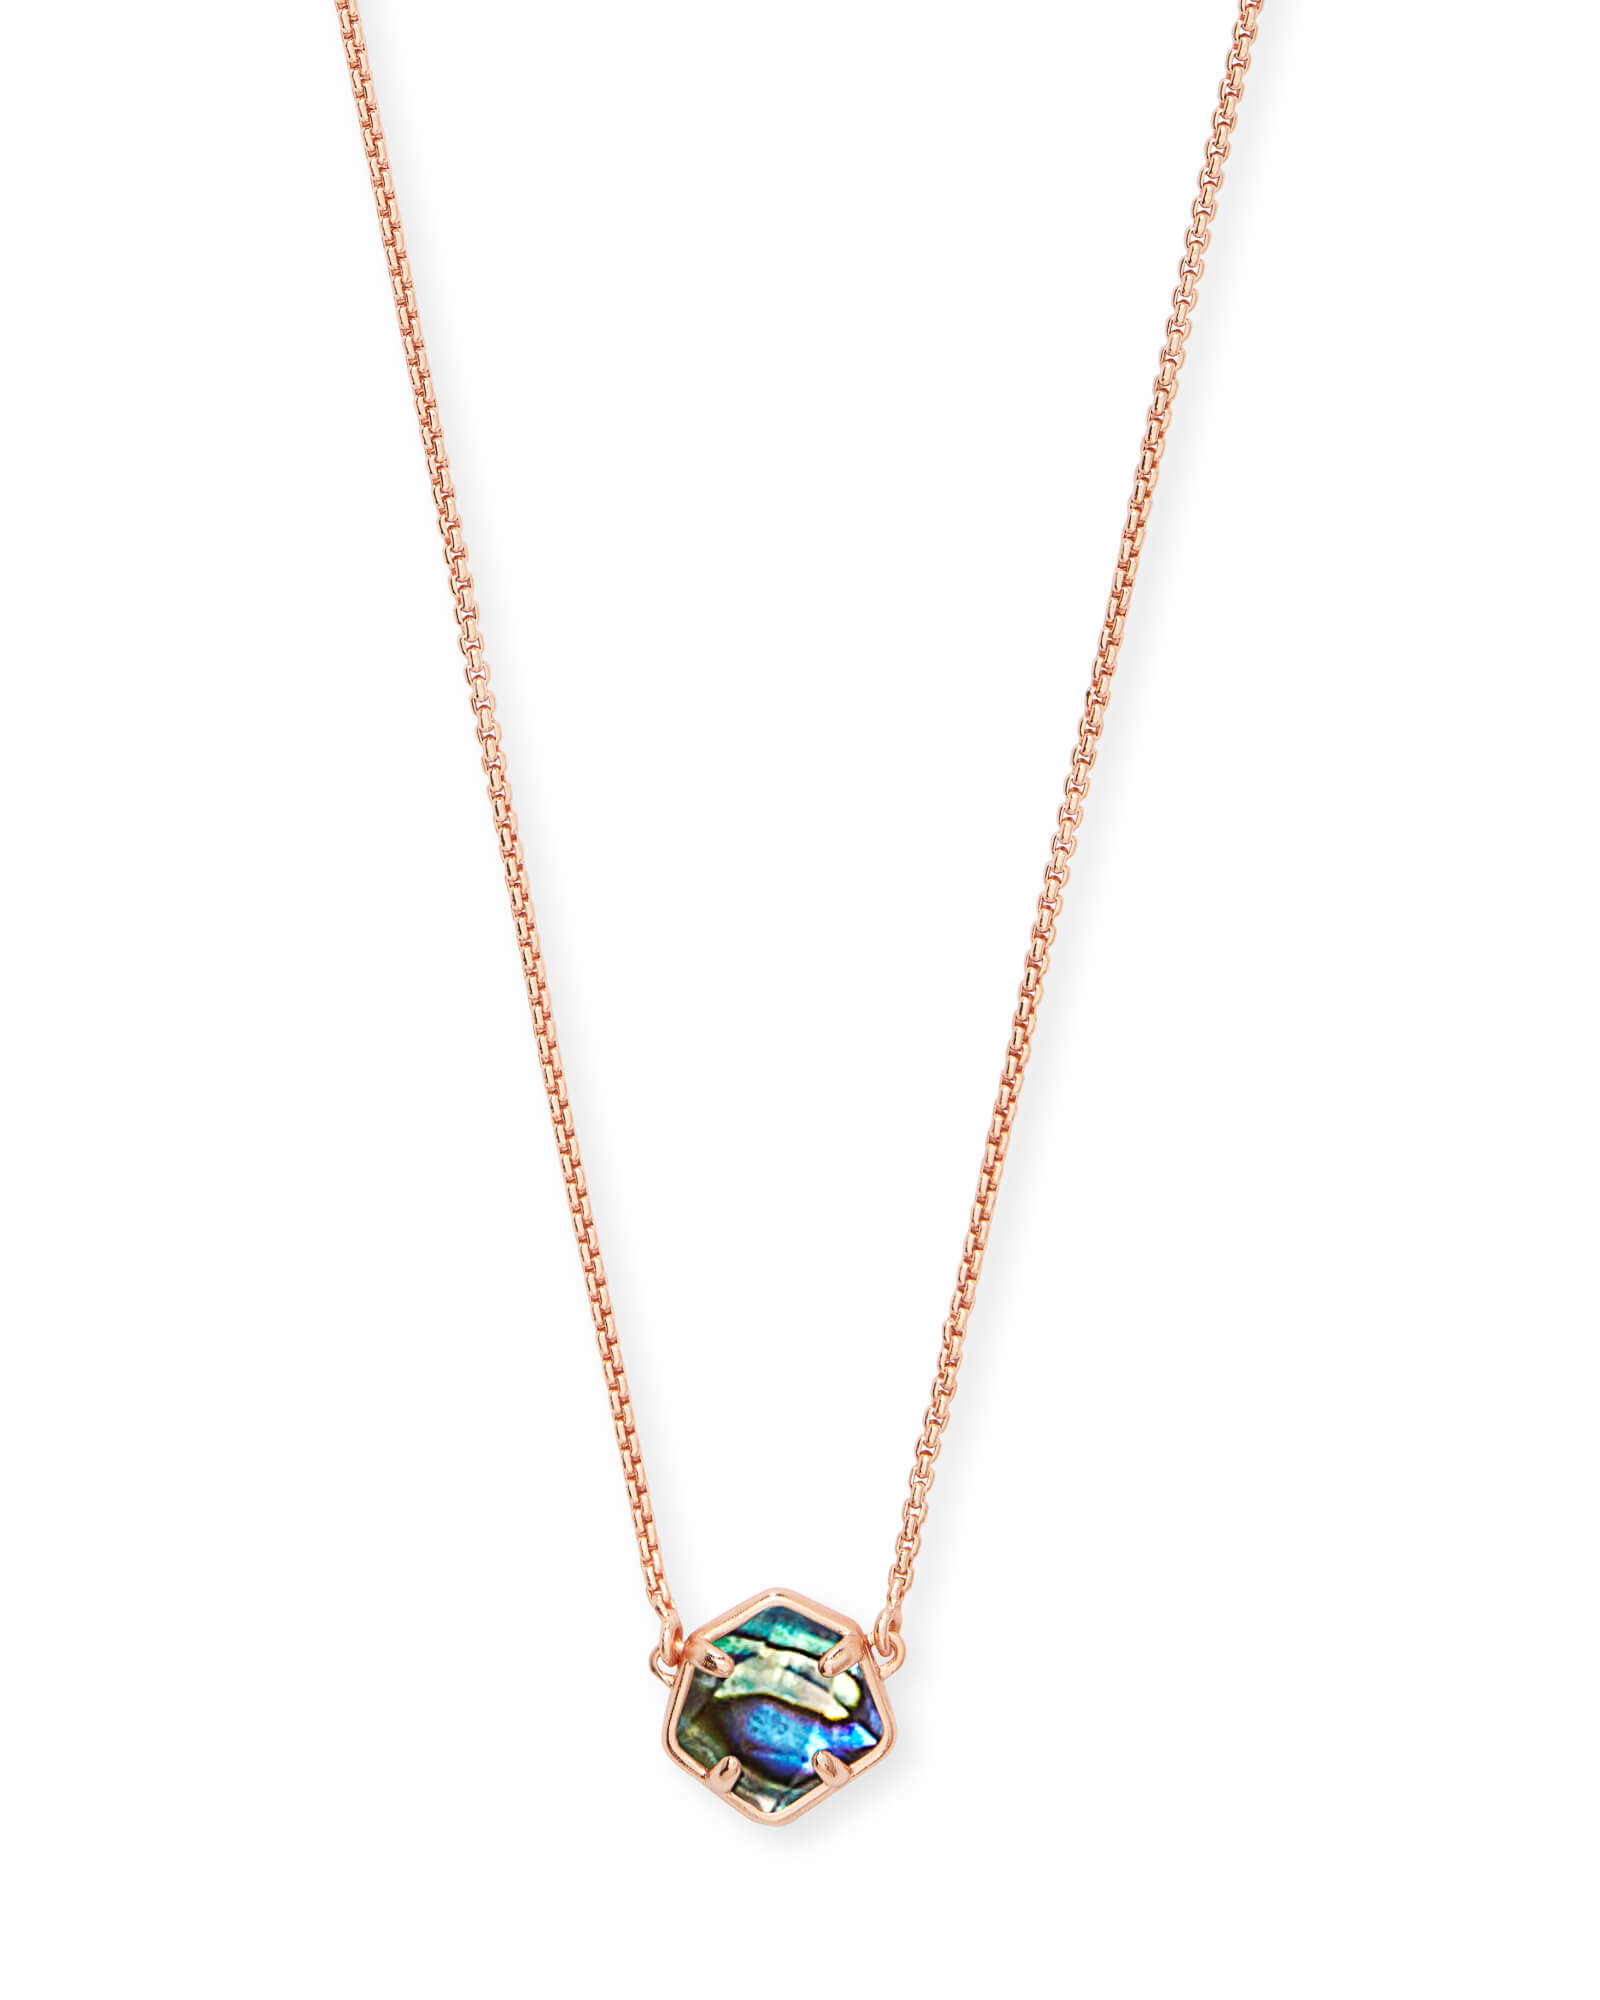 Jaxon Rose Gold Pendant Necklace in Abalone Shell